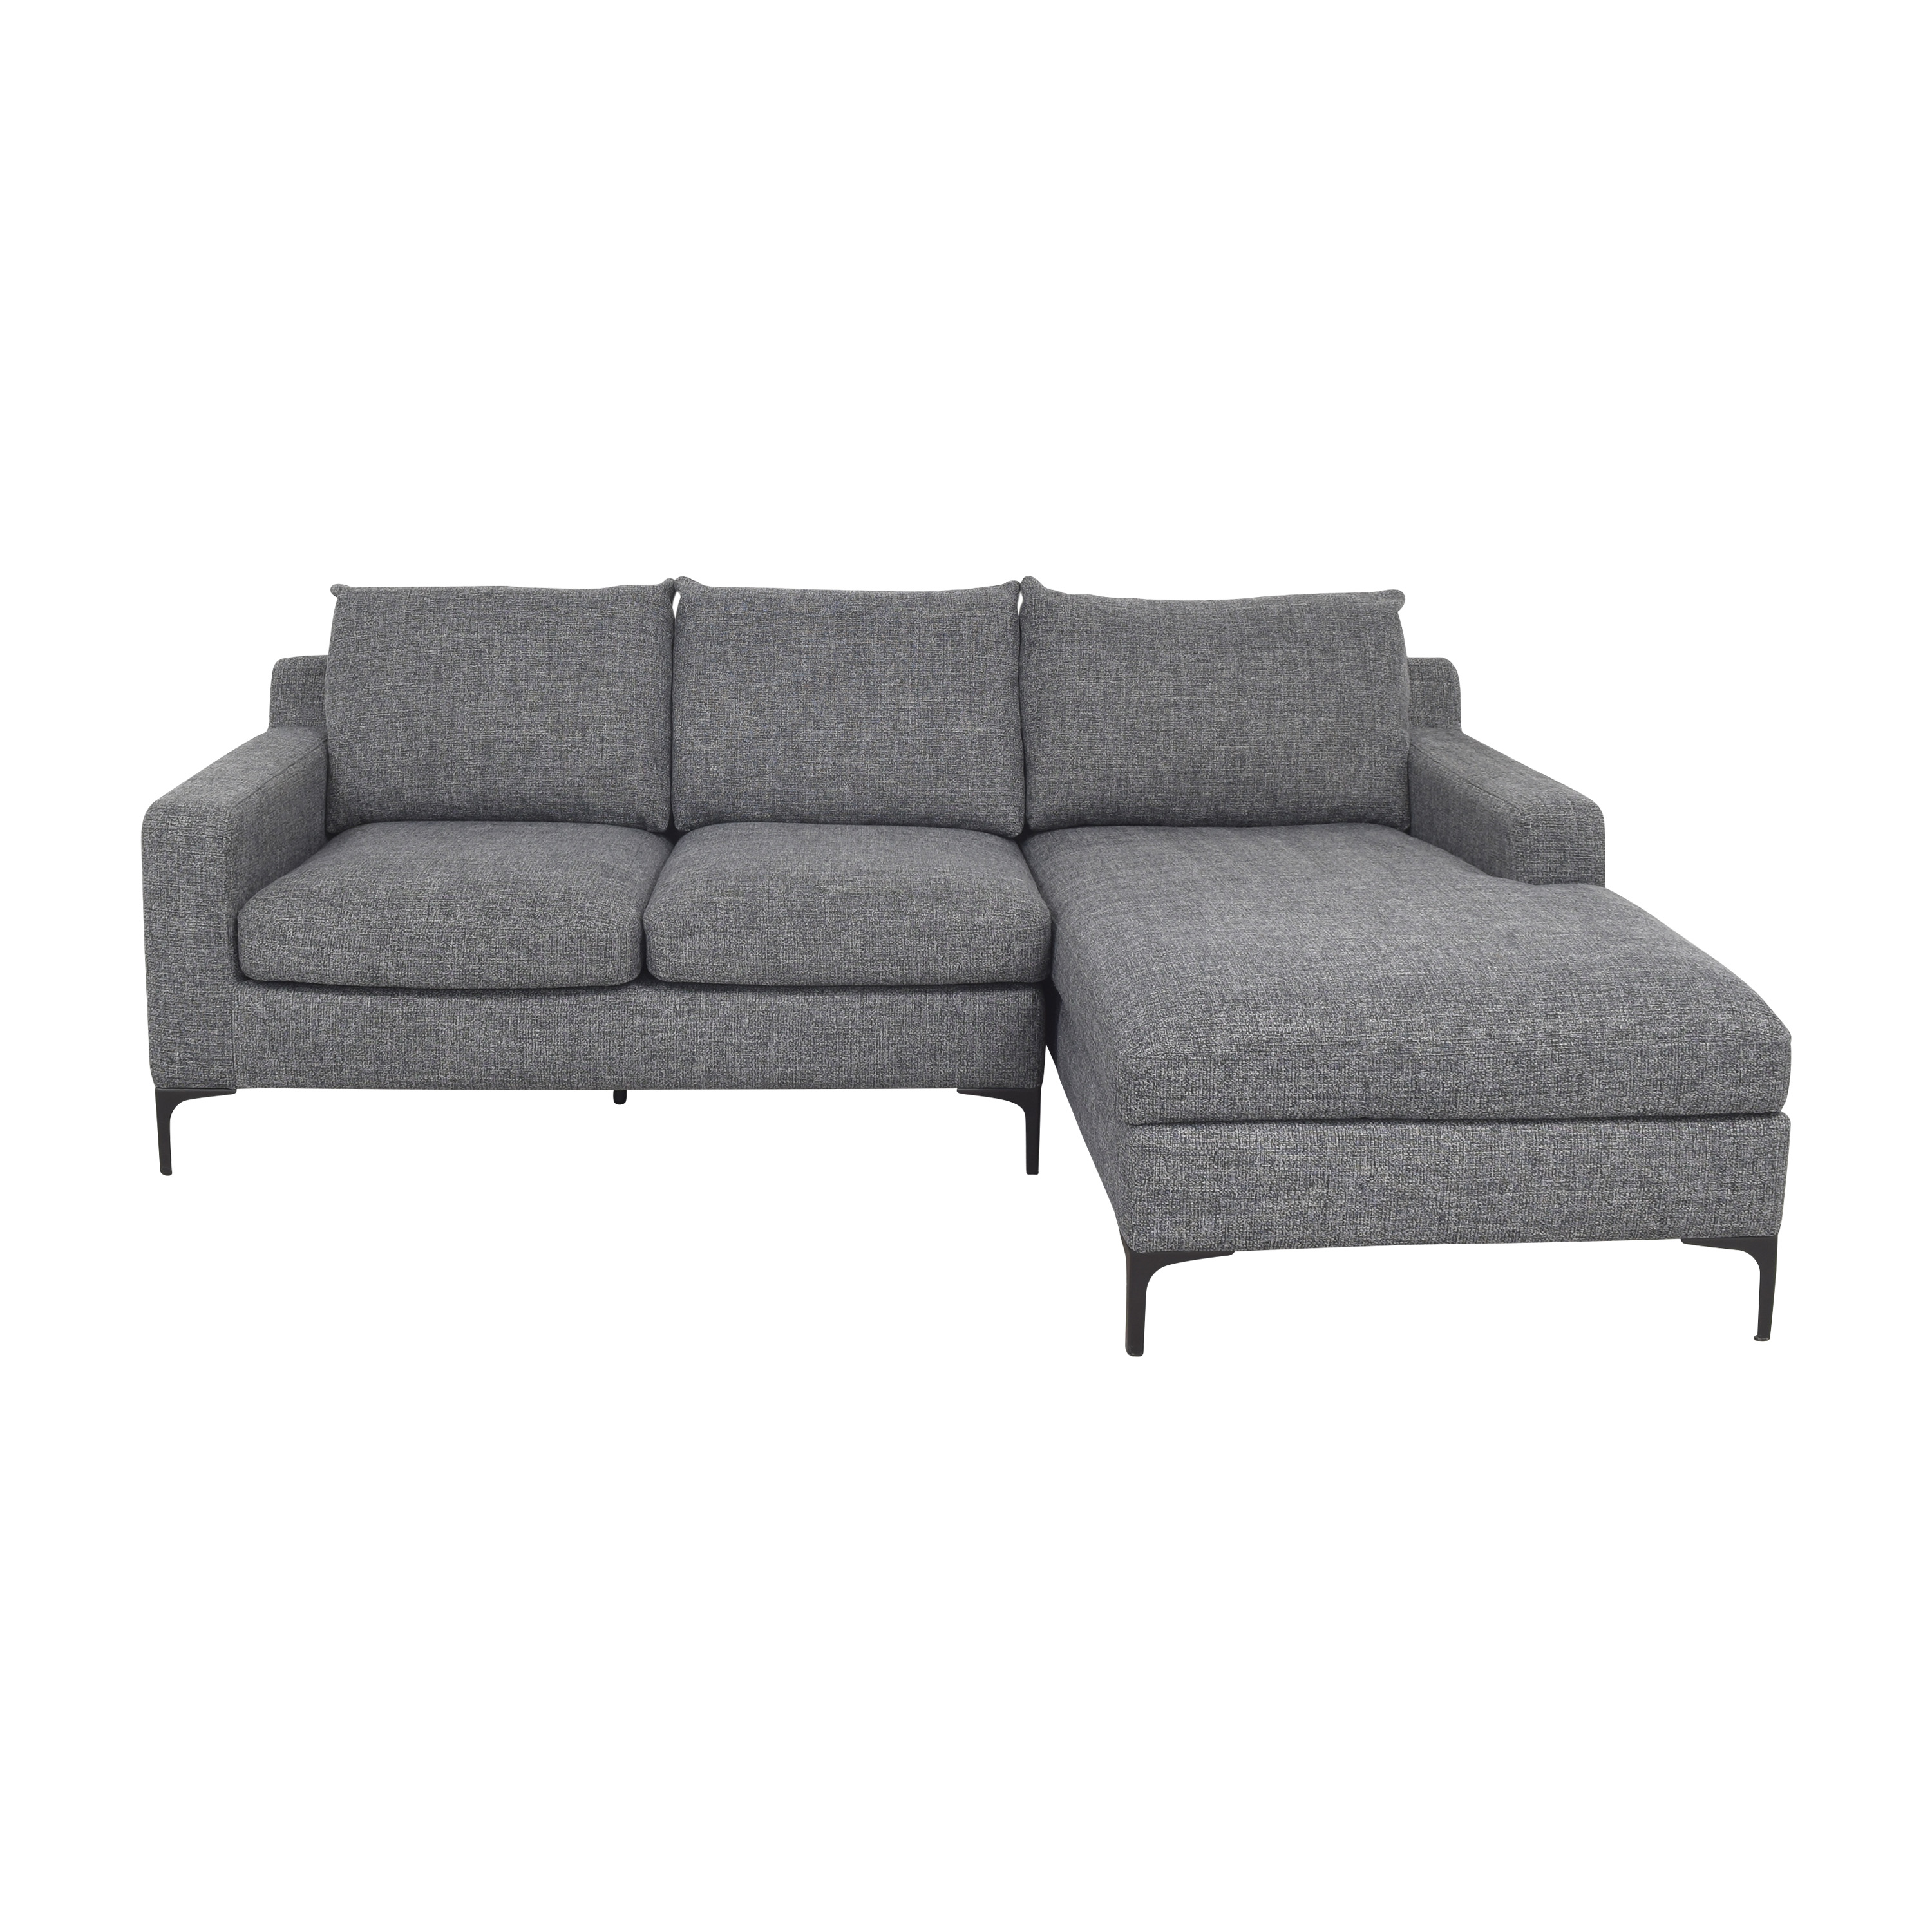 Interior Define Interior Define Sloan Sectional Sofa with Chaise grey